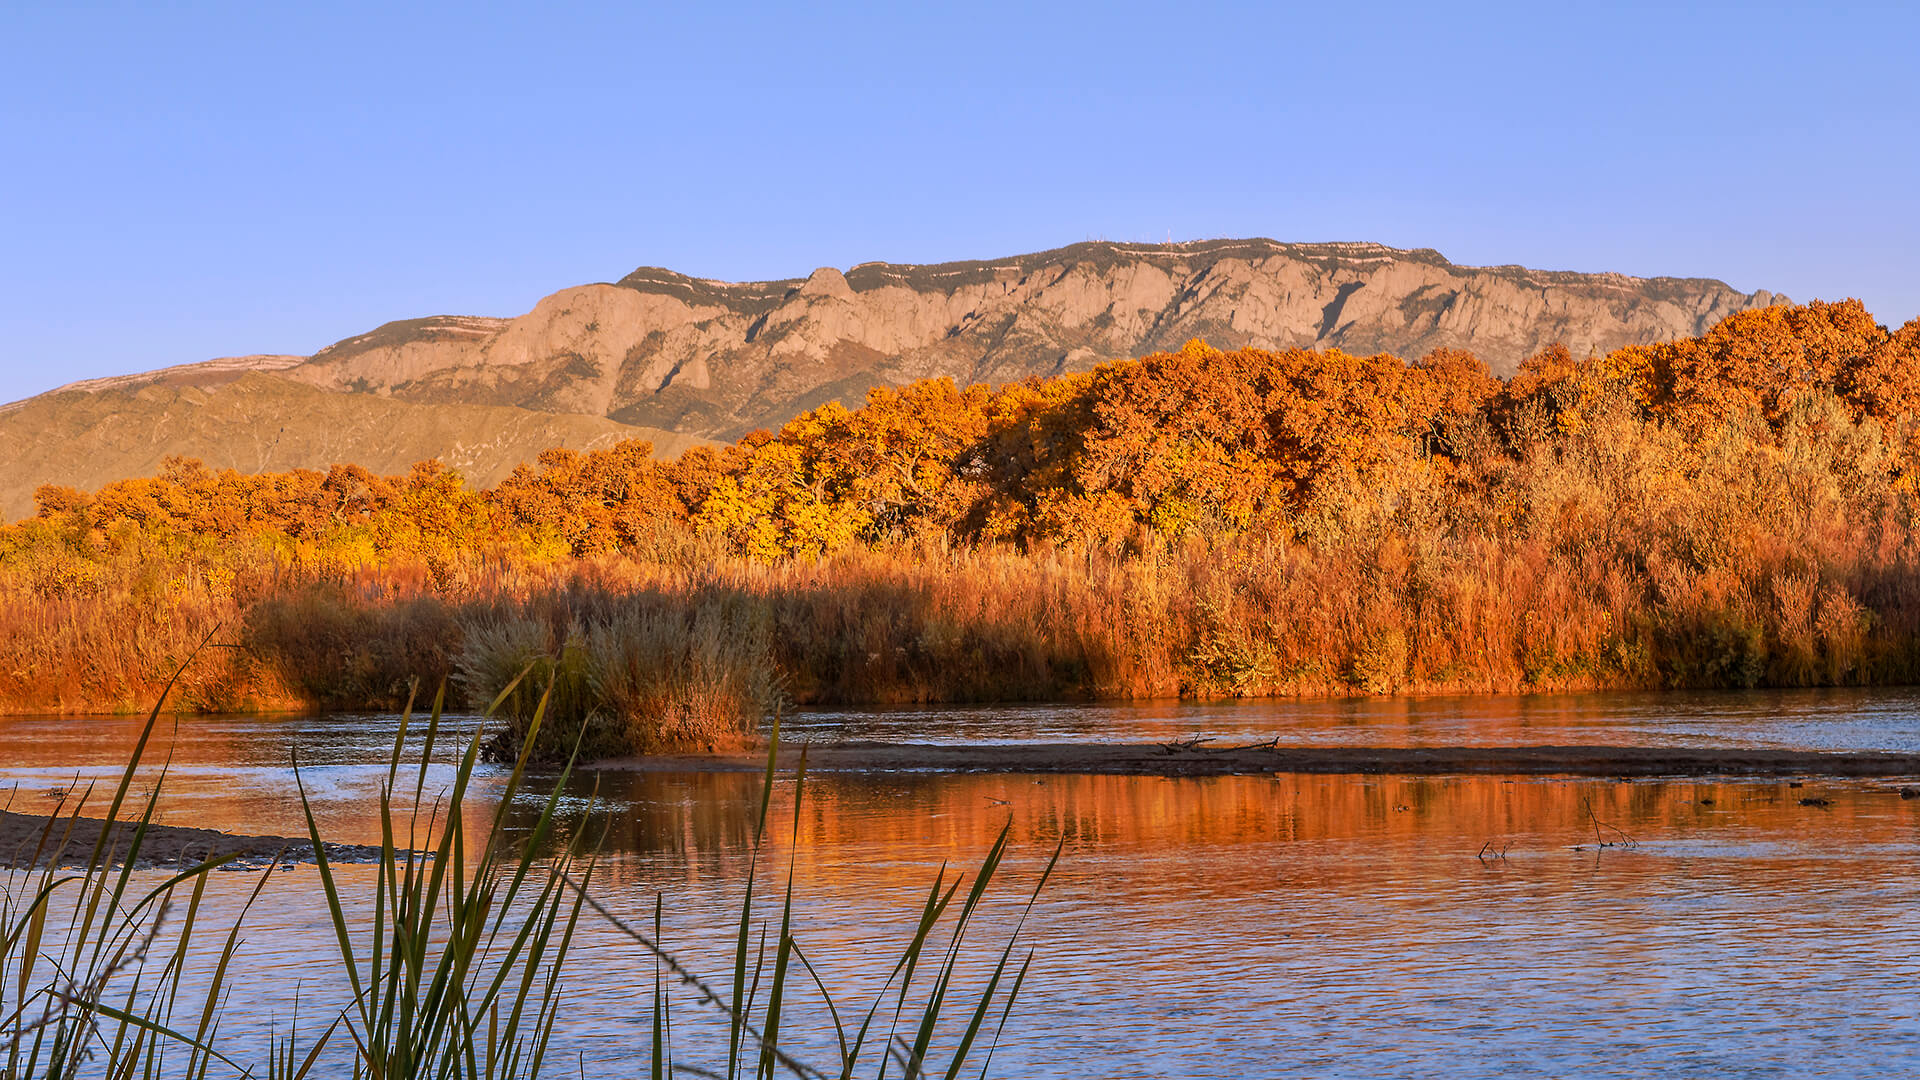 Autumn on the Rio Grande. Fall foliage in the Bosque along the Rio Grande River in Albuquerque, NM.